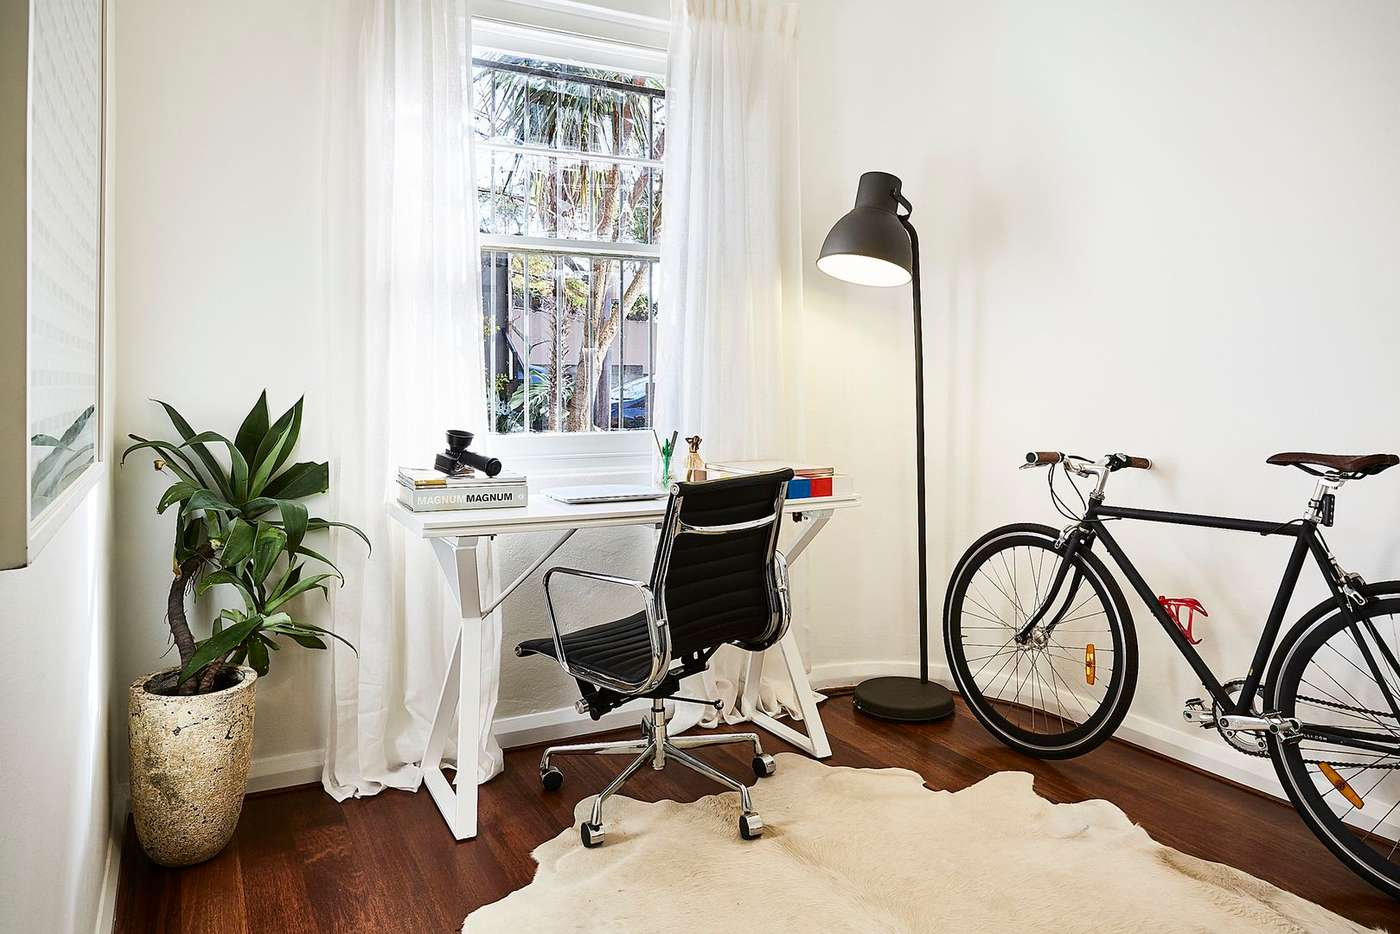 Seventh view of Homely apartment listing, 2/3 Ocean Street, Woollahra NSW 2025